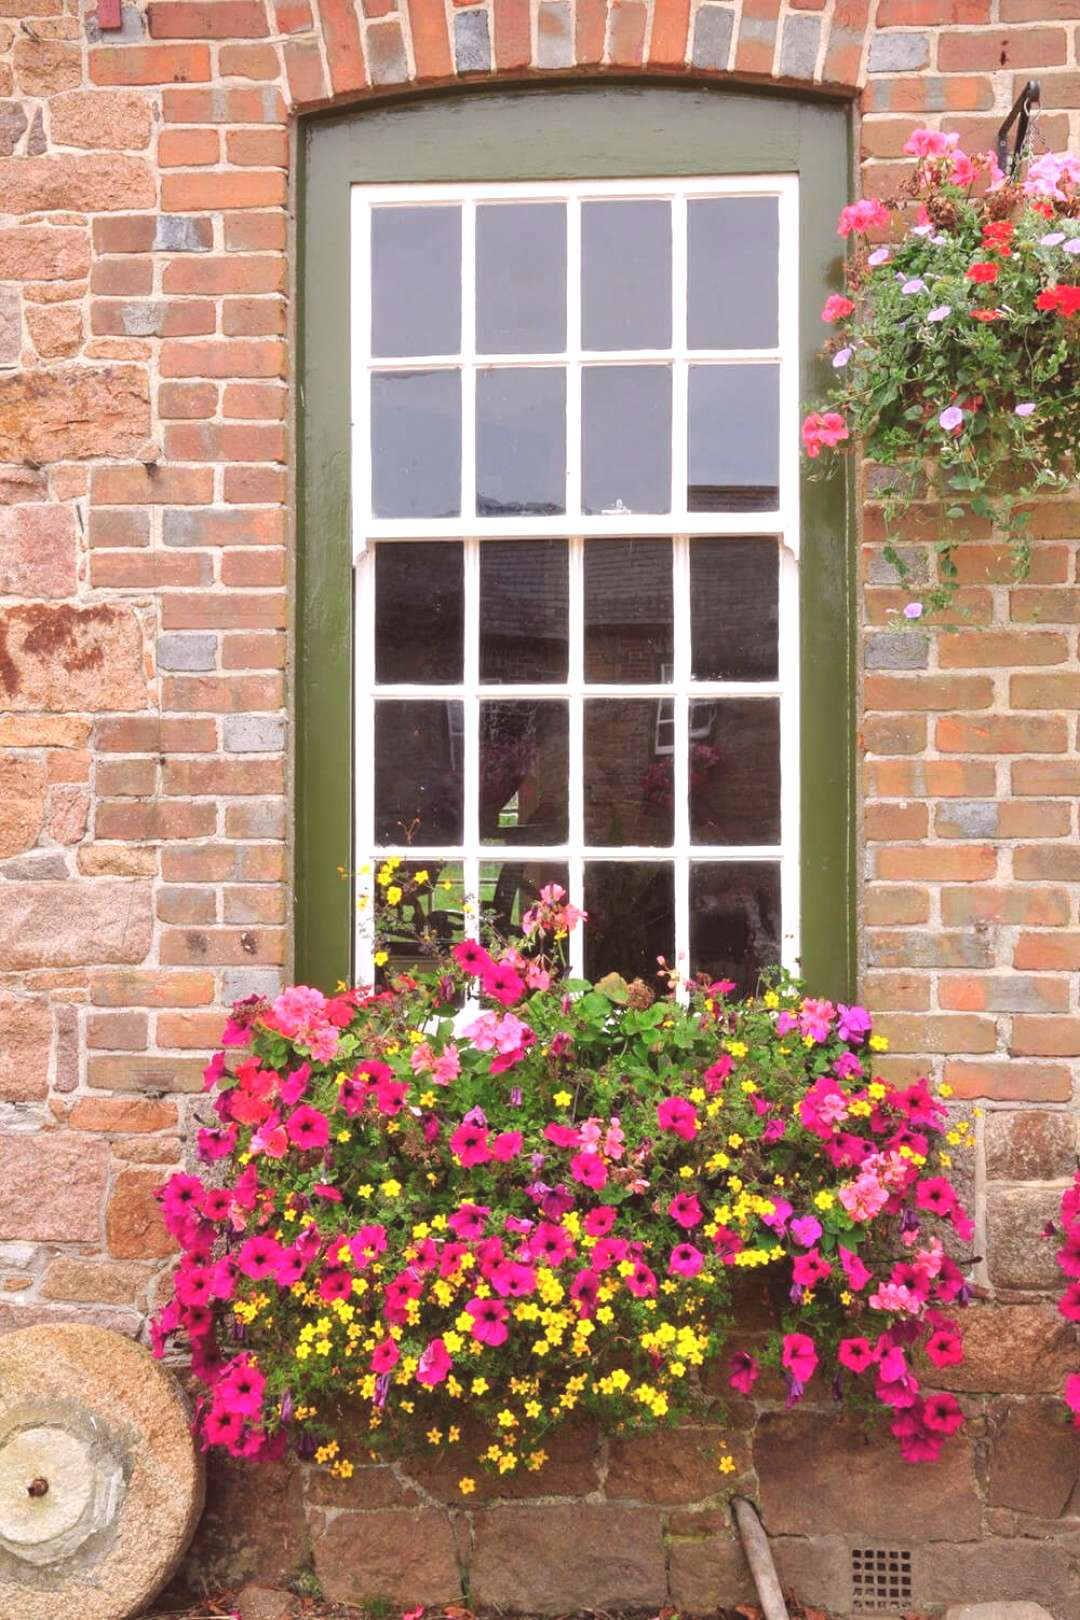 32 Stunning Flower Box Ideas & Arrangements -  A beautiful window box filled with small yellow flow